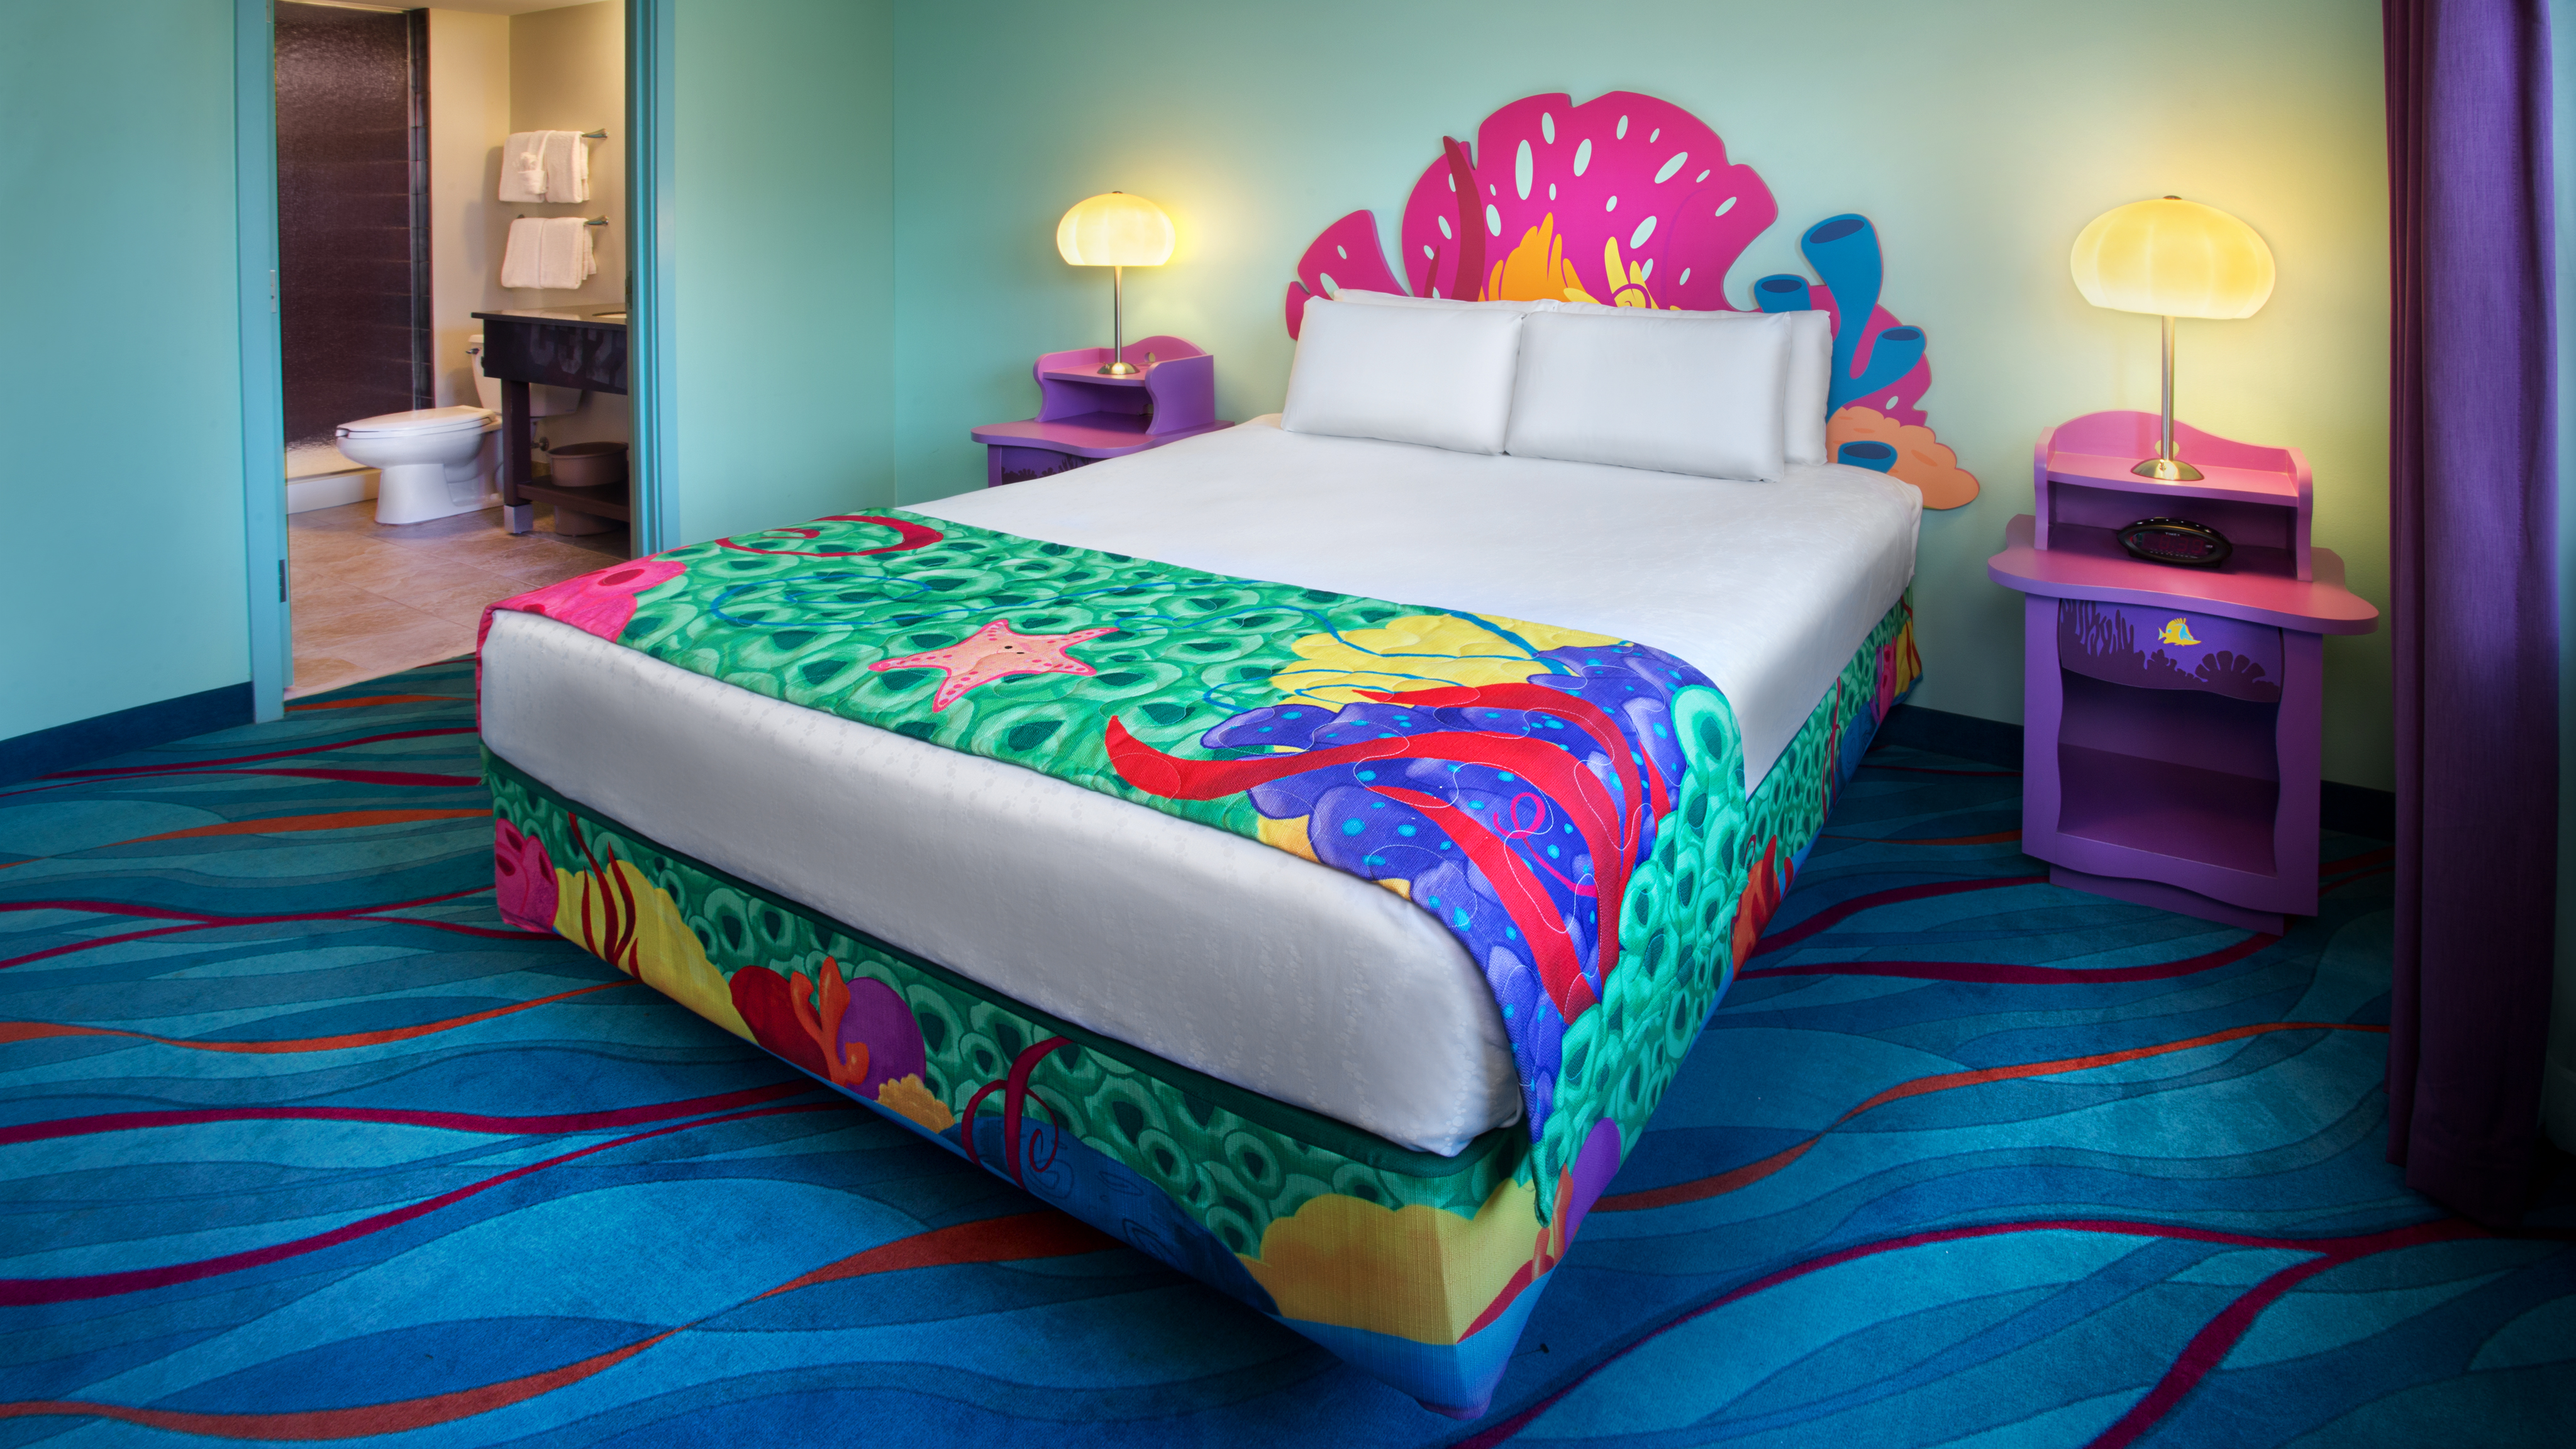 Finding Nemo Suites Themeparkbeds